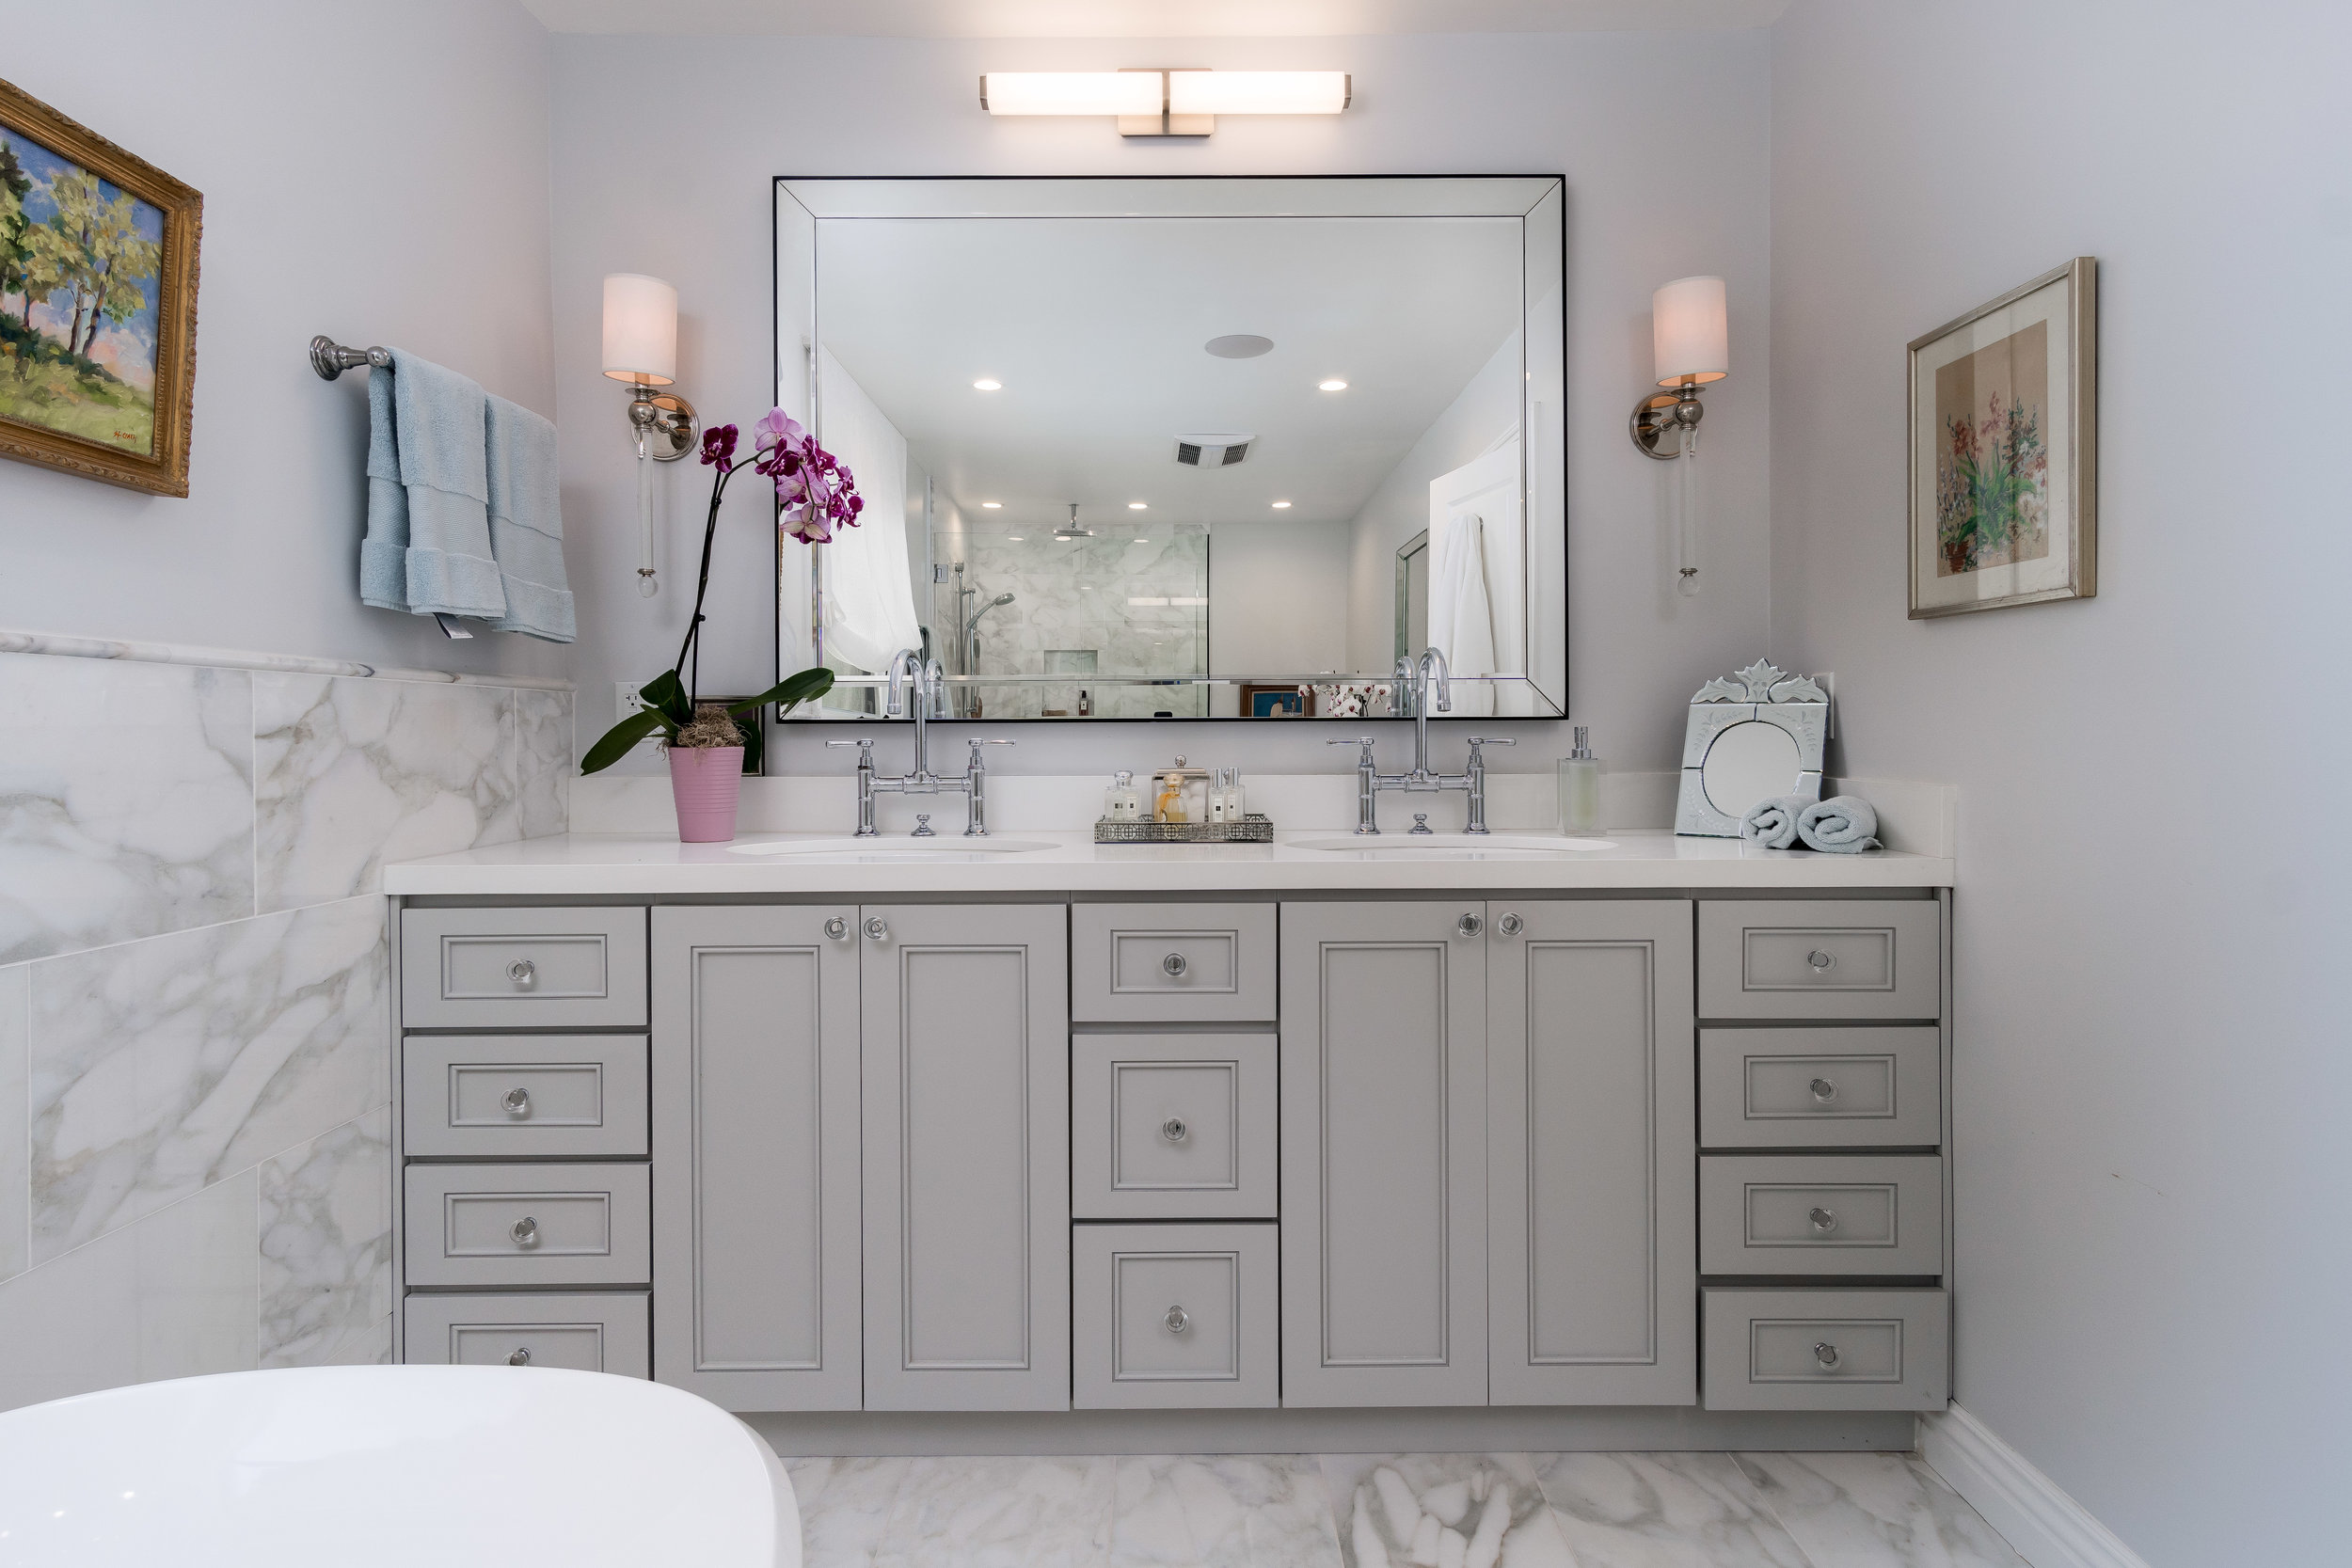 Delivered photo of the master bathroom ©Ryan Carr - Legacy Listing Photography - 2017